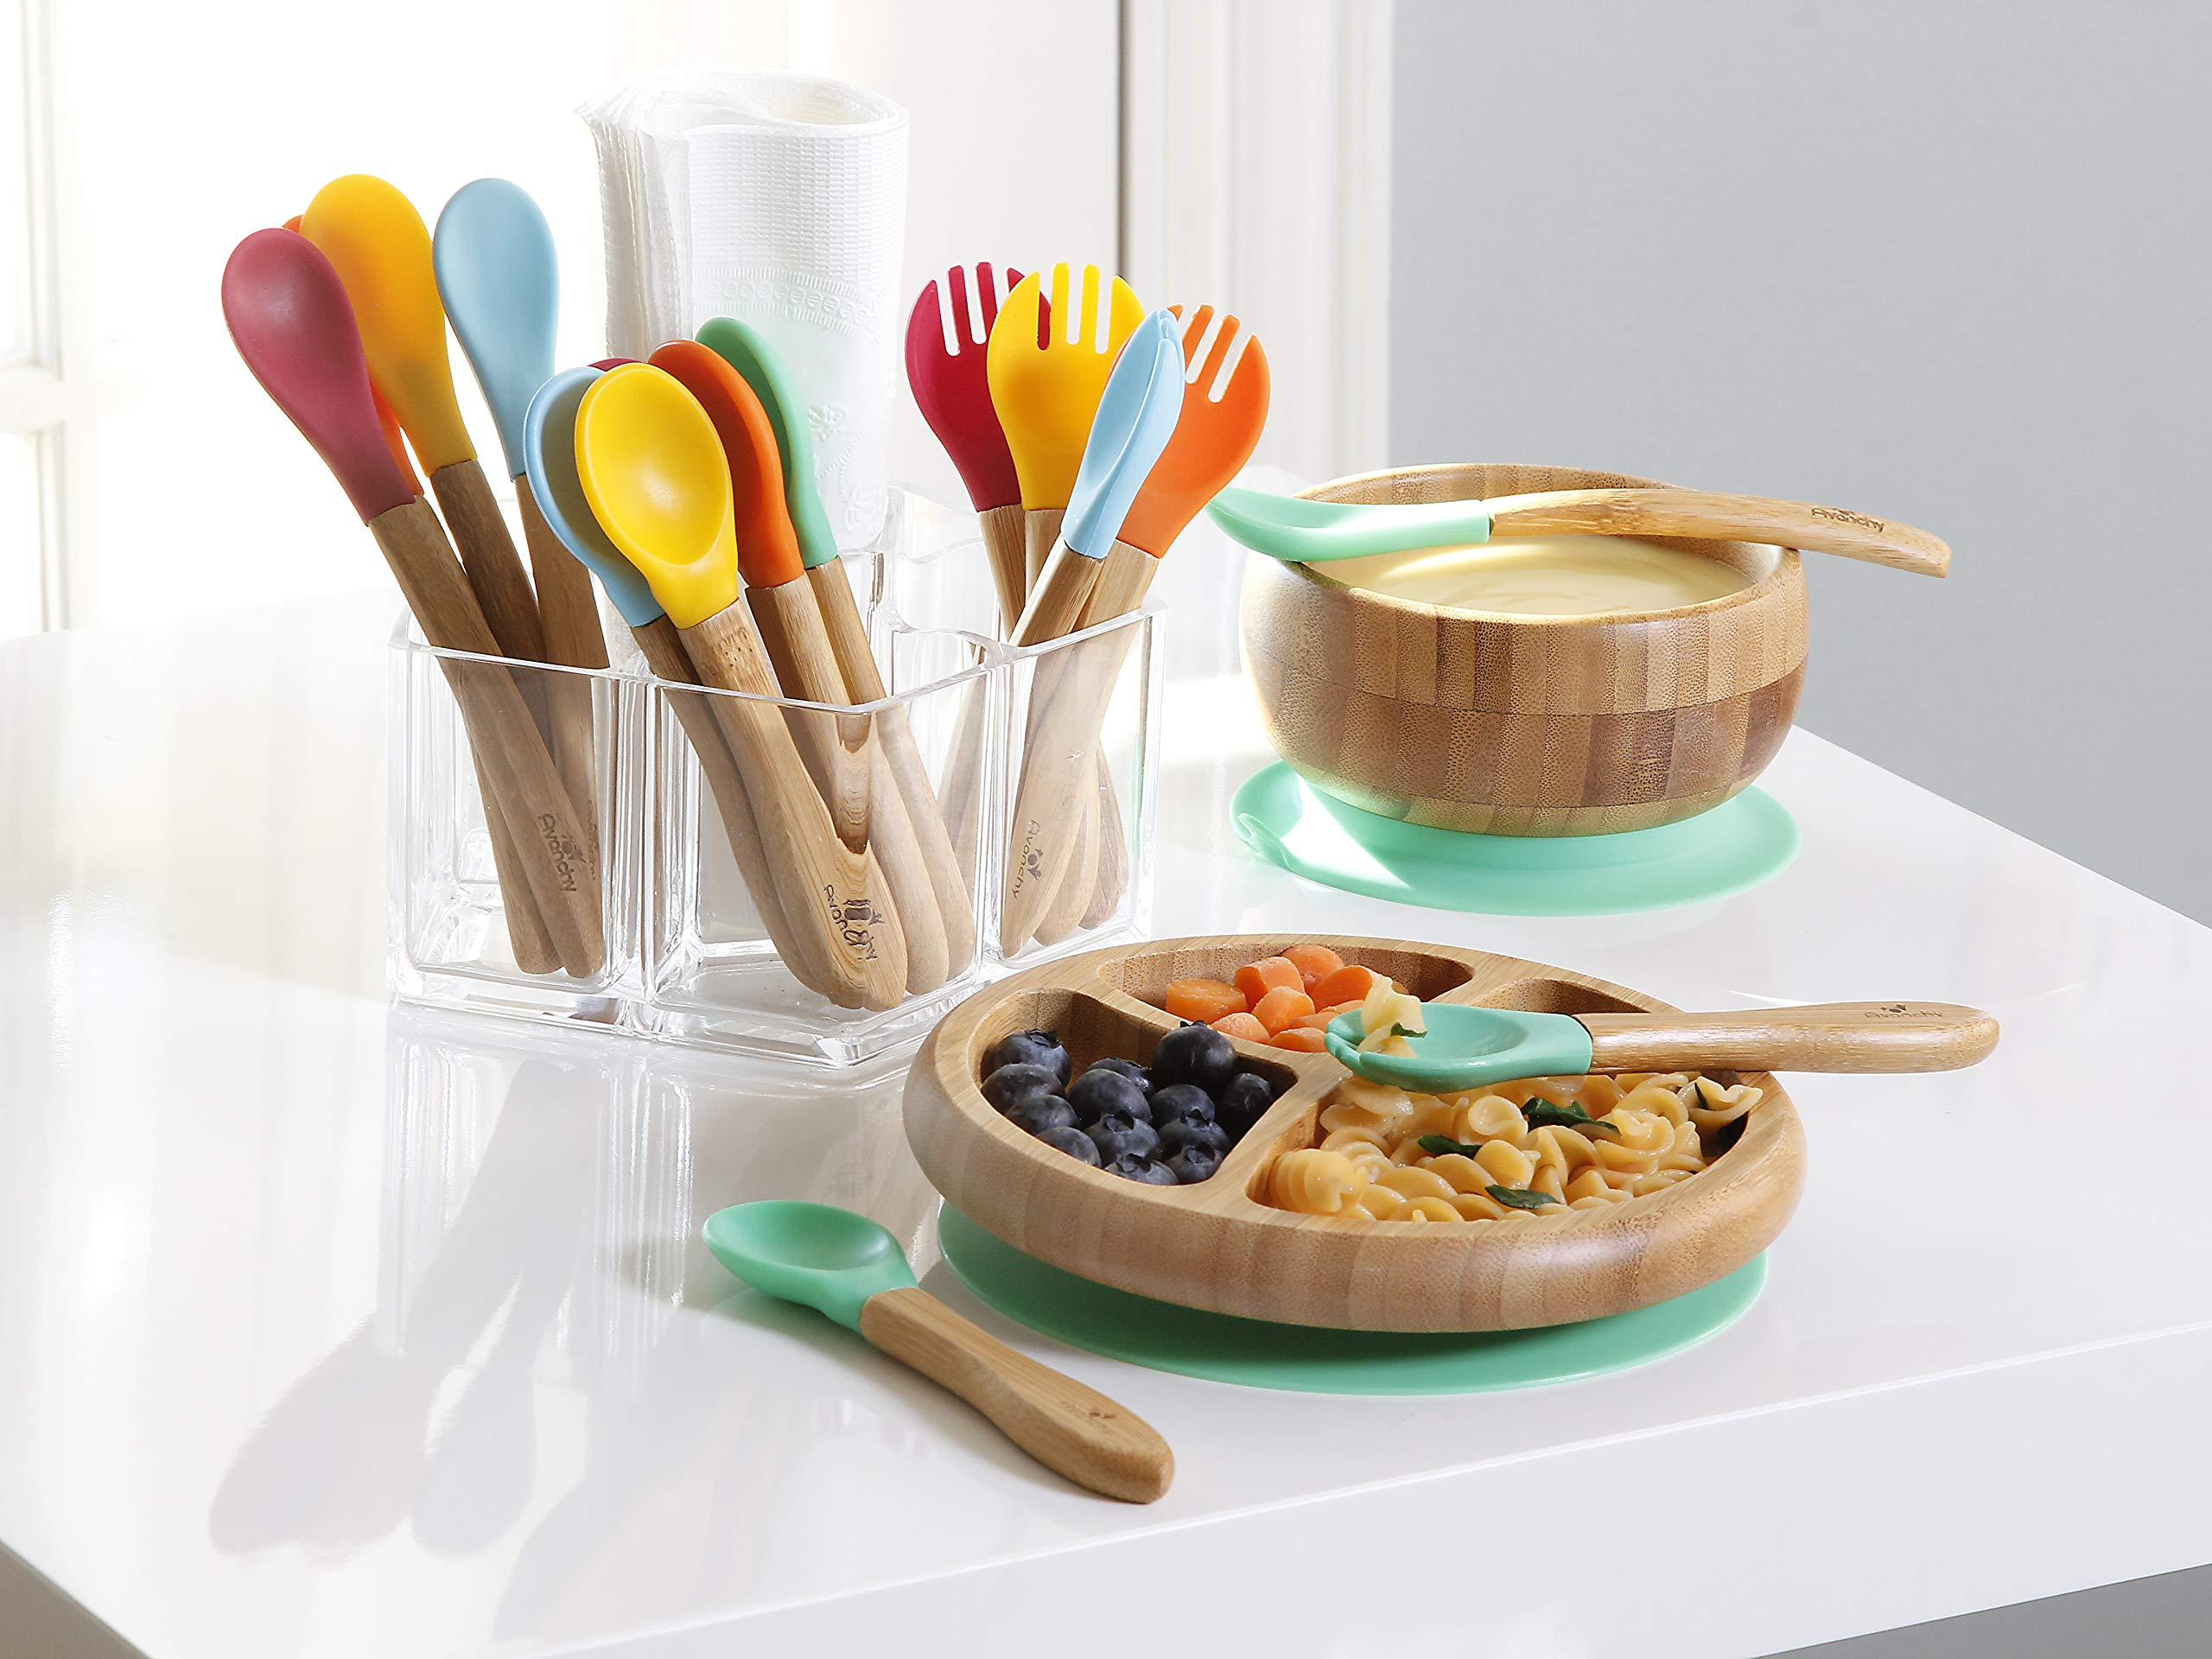 Avanchy - Rainbow Baby Set with Spill Proof, Stay Put Suction Bamboo Bowl and Spoon Set, Divided Plate and Spoon Set, and 5 Colorful Spoons - Green